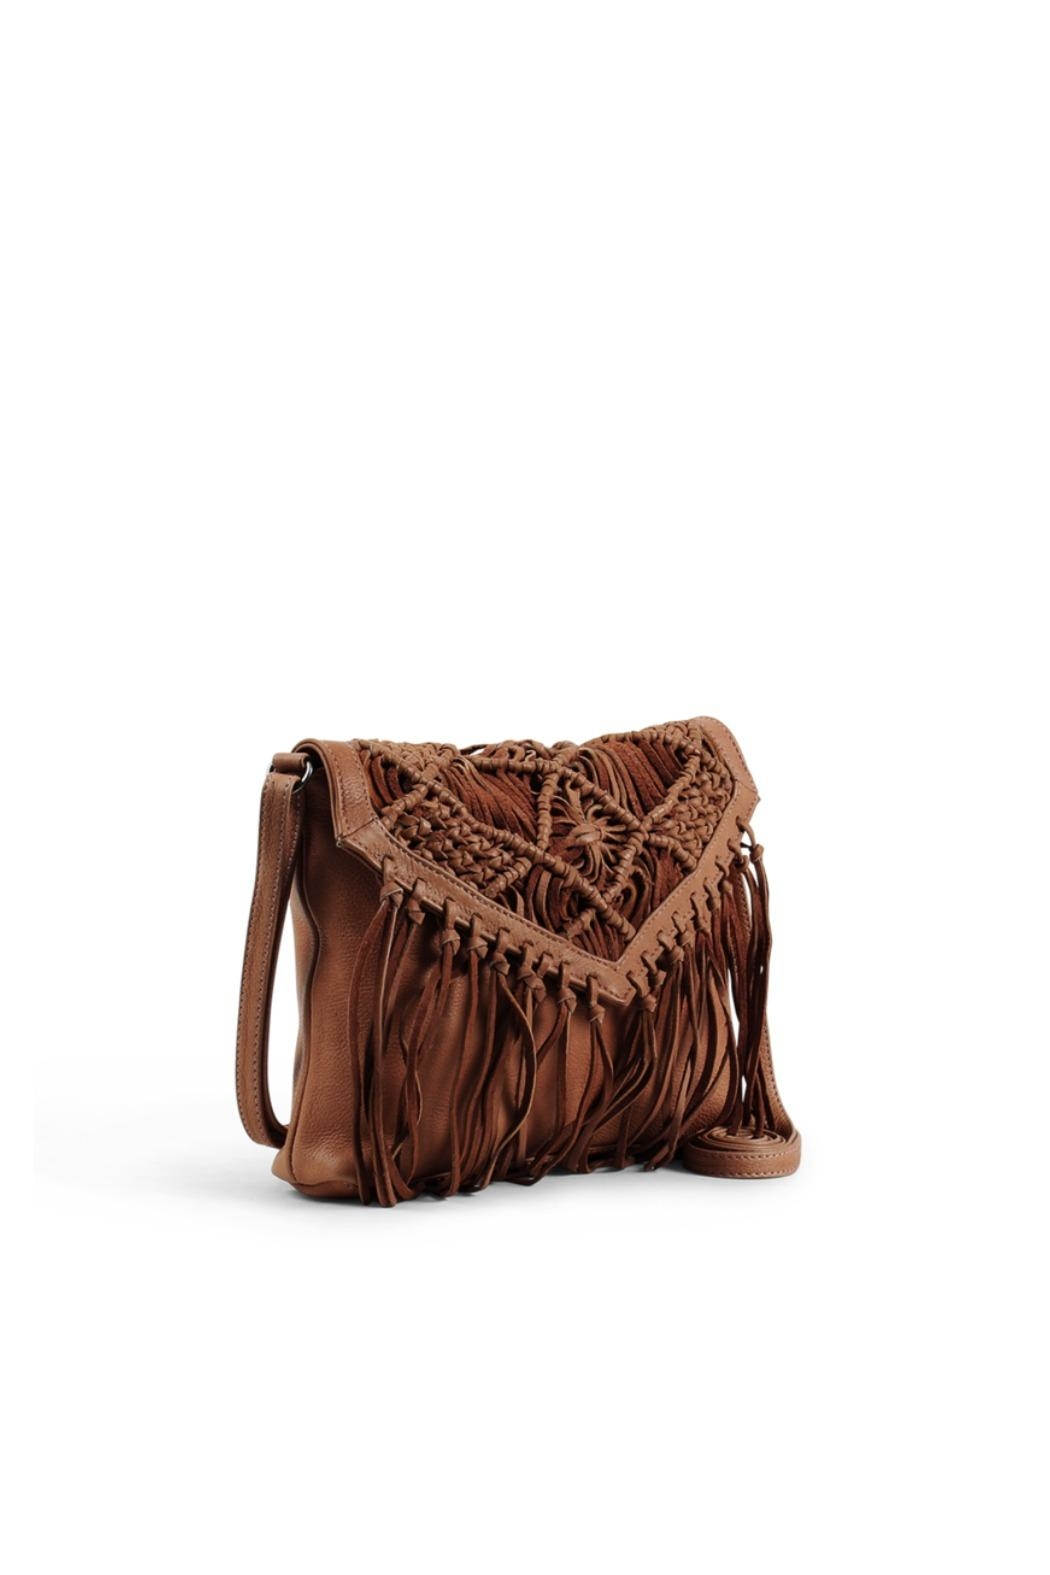 Day & Mood Tassel Leather Crossbody Bag - Front Full Image